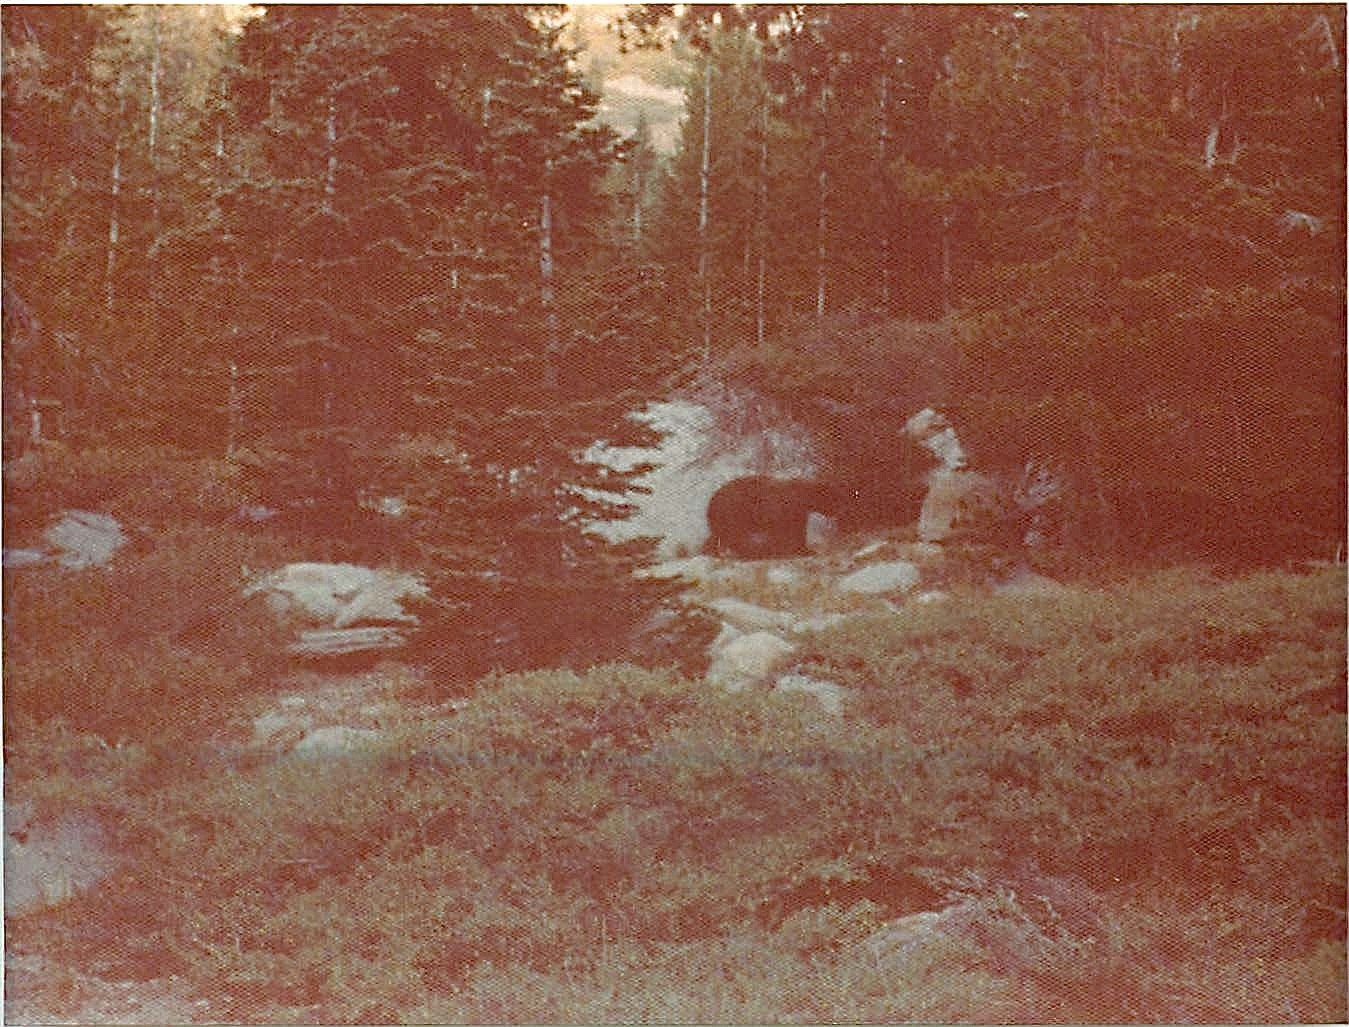 Bear in our campground, near Clouds Rest, Yosemite, 1975 California